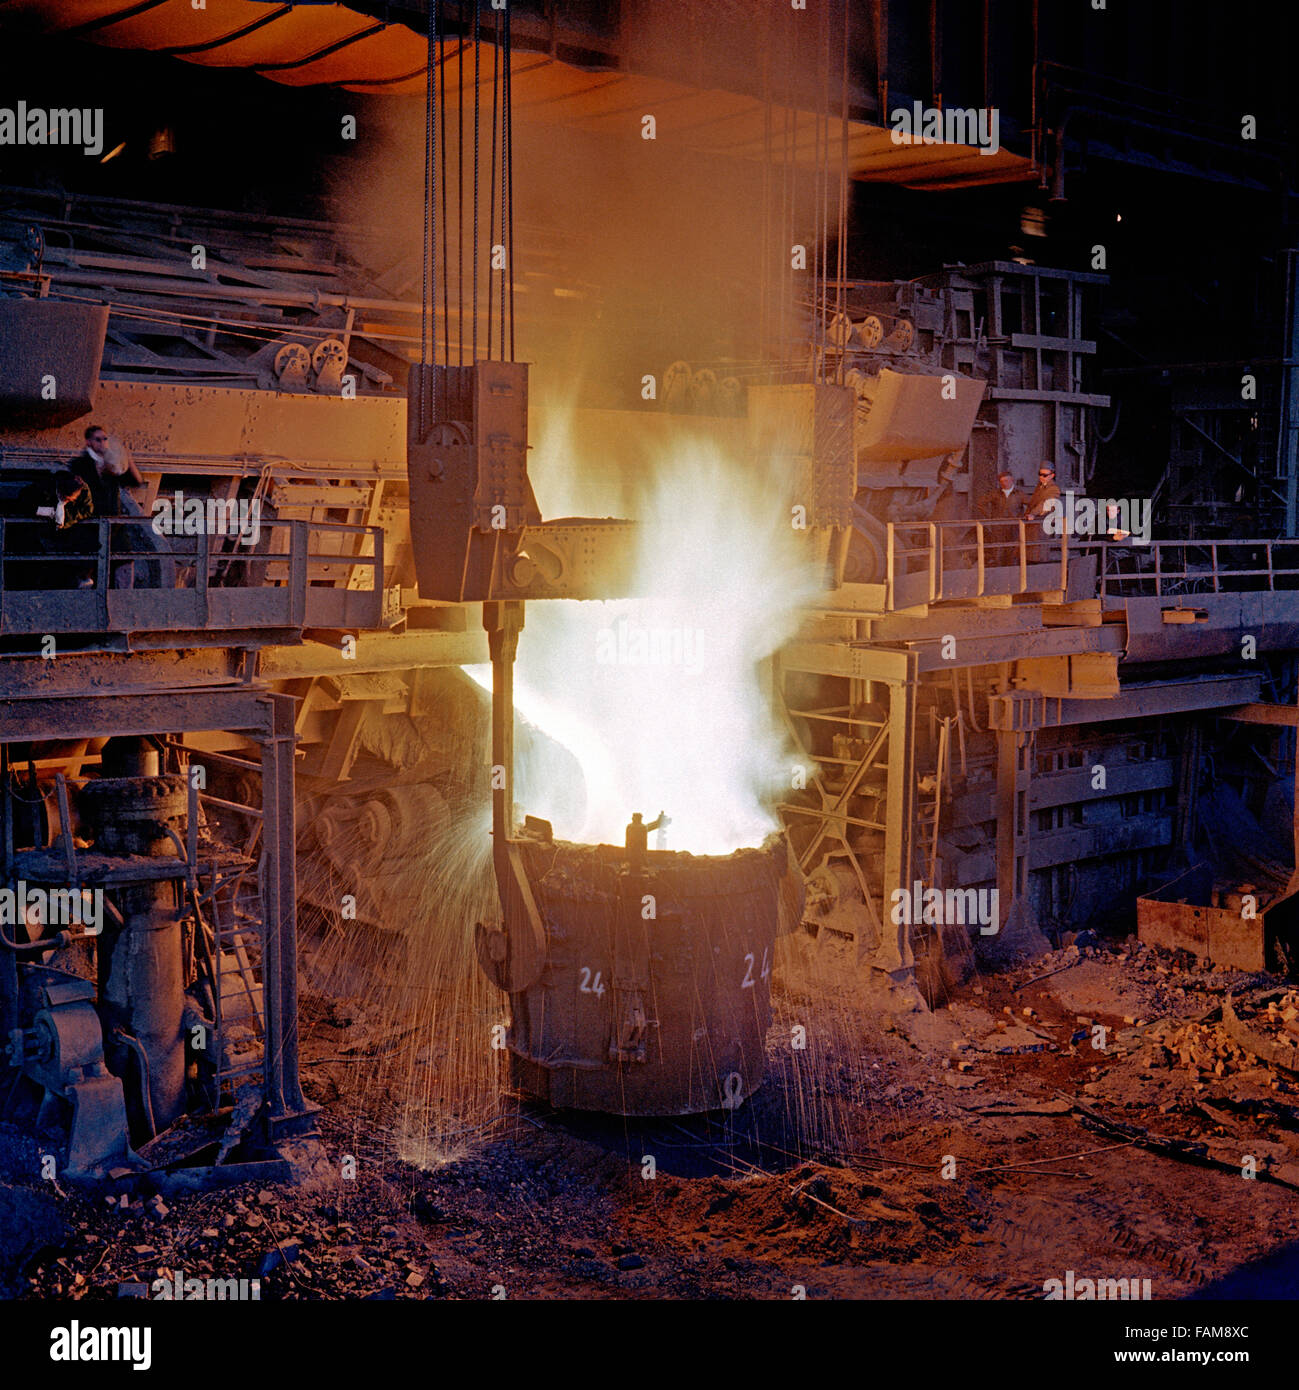 Tapping old style open hearth steel furnace. - Stock Image